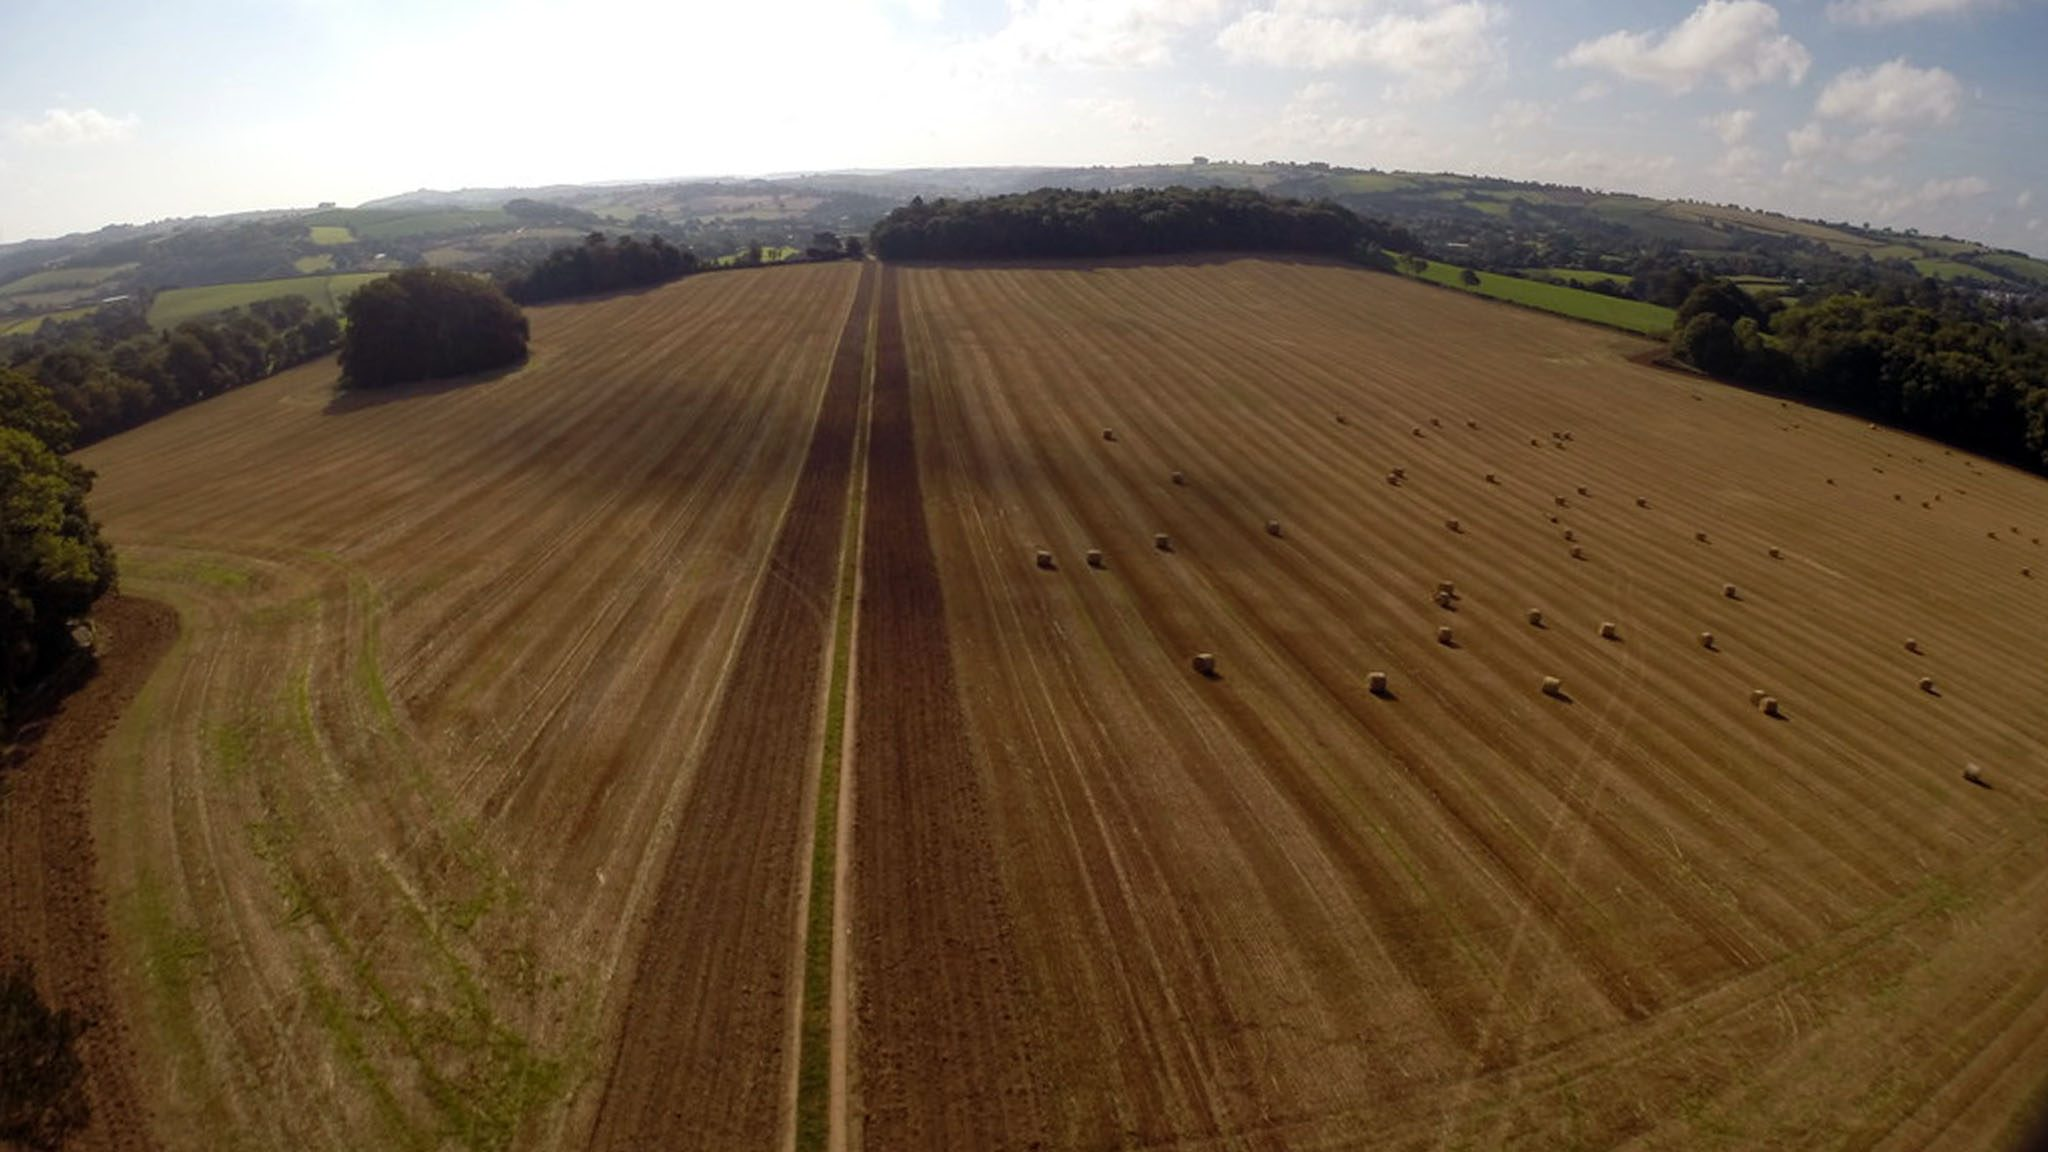 The field at Dartington proposed for agroforestry use